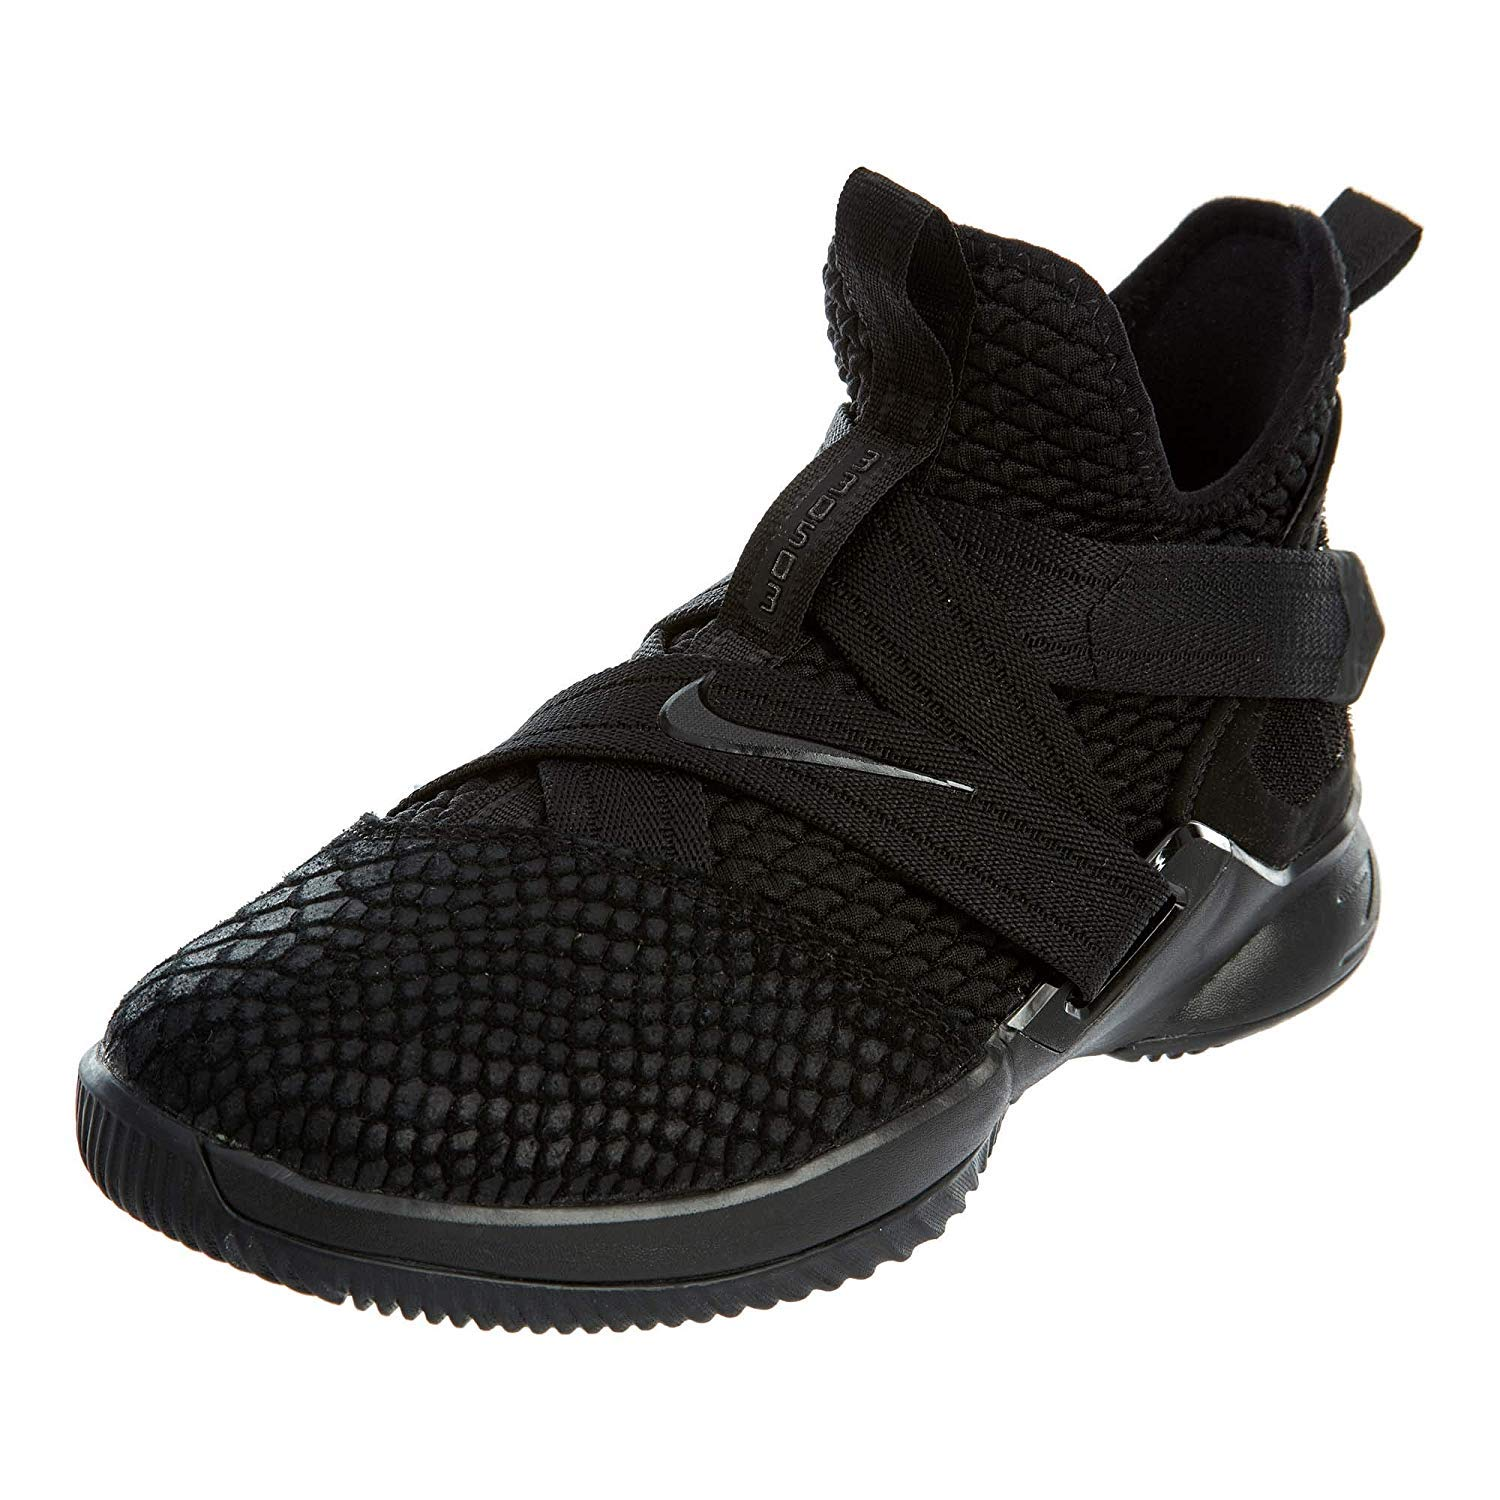 the best attitude a58fd 72bf2 Amazon.com | Nike Lebron Soldier XII SFG (GS) Girls ...